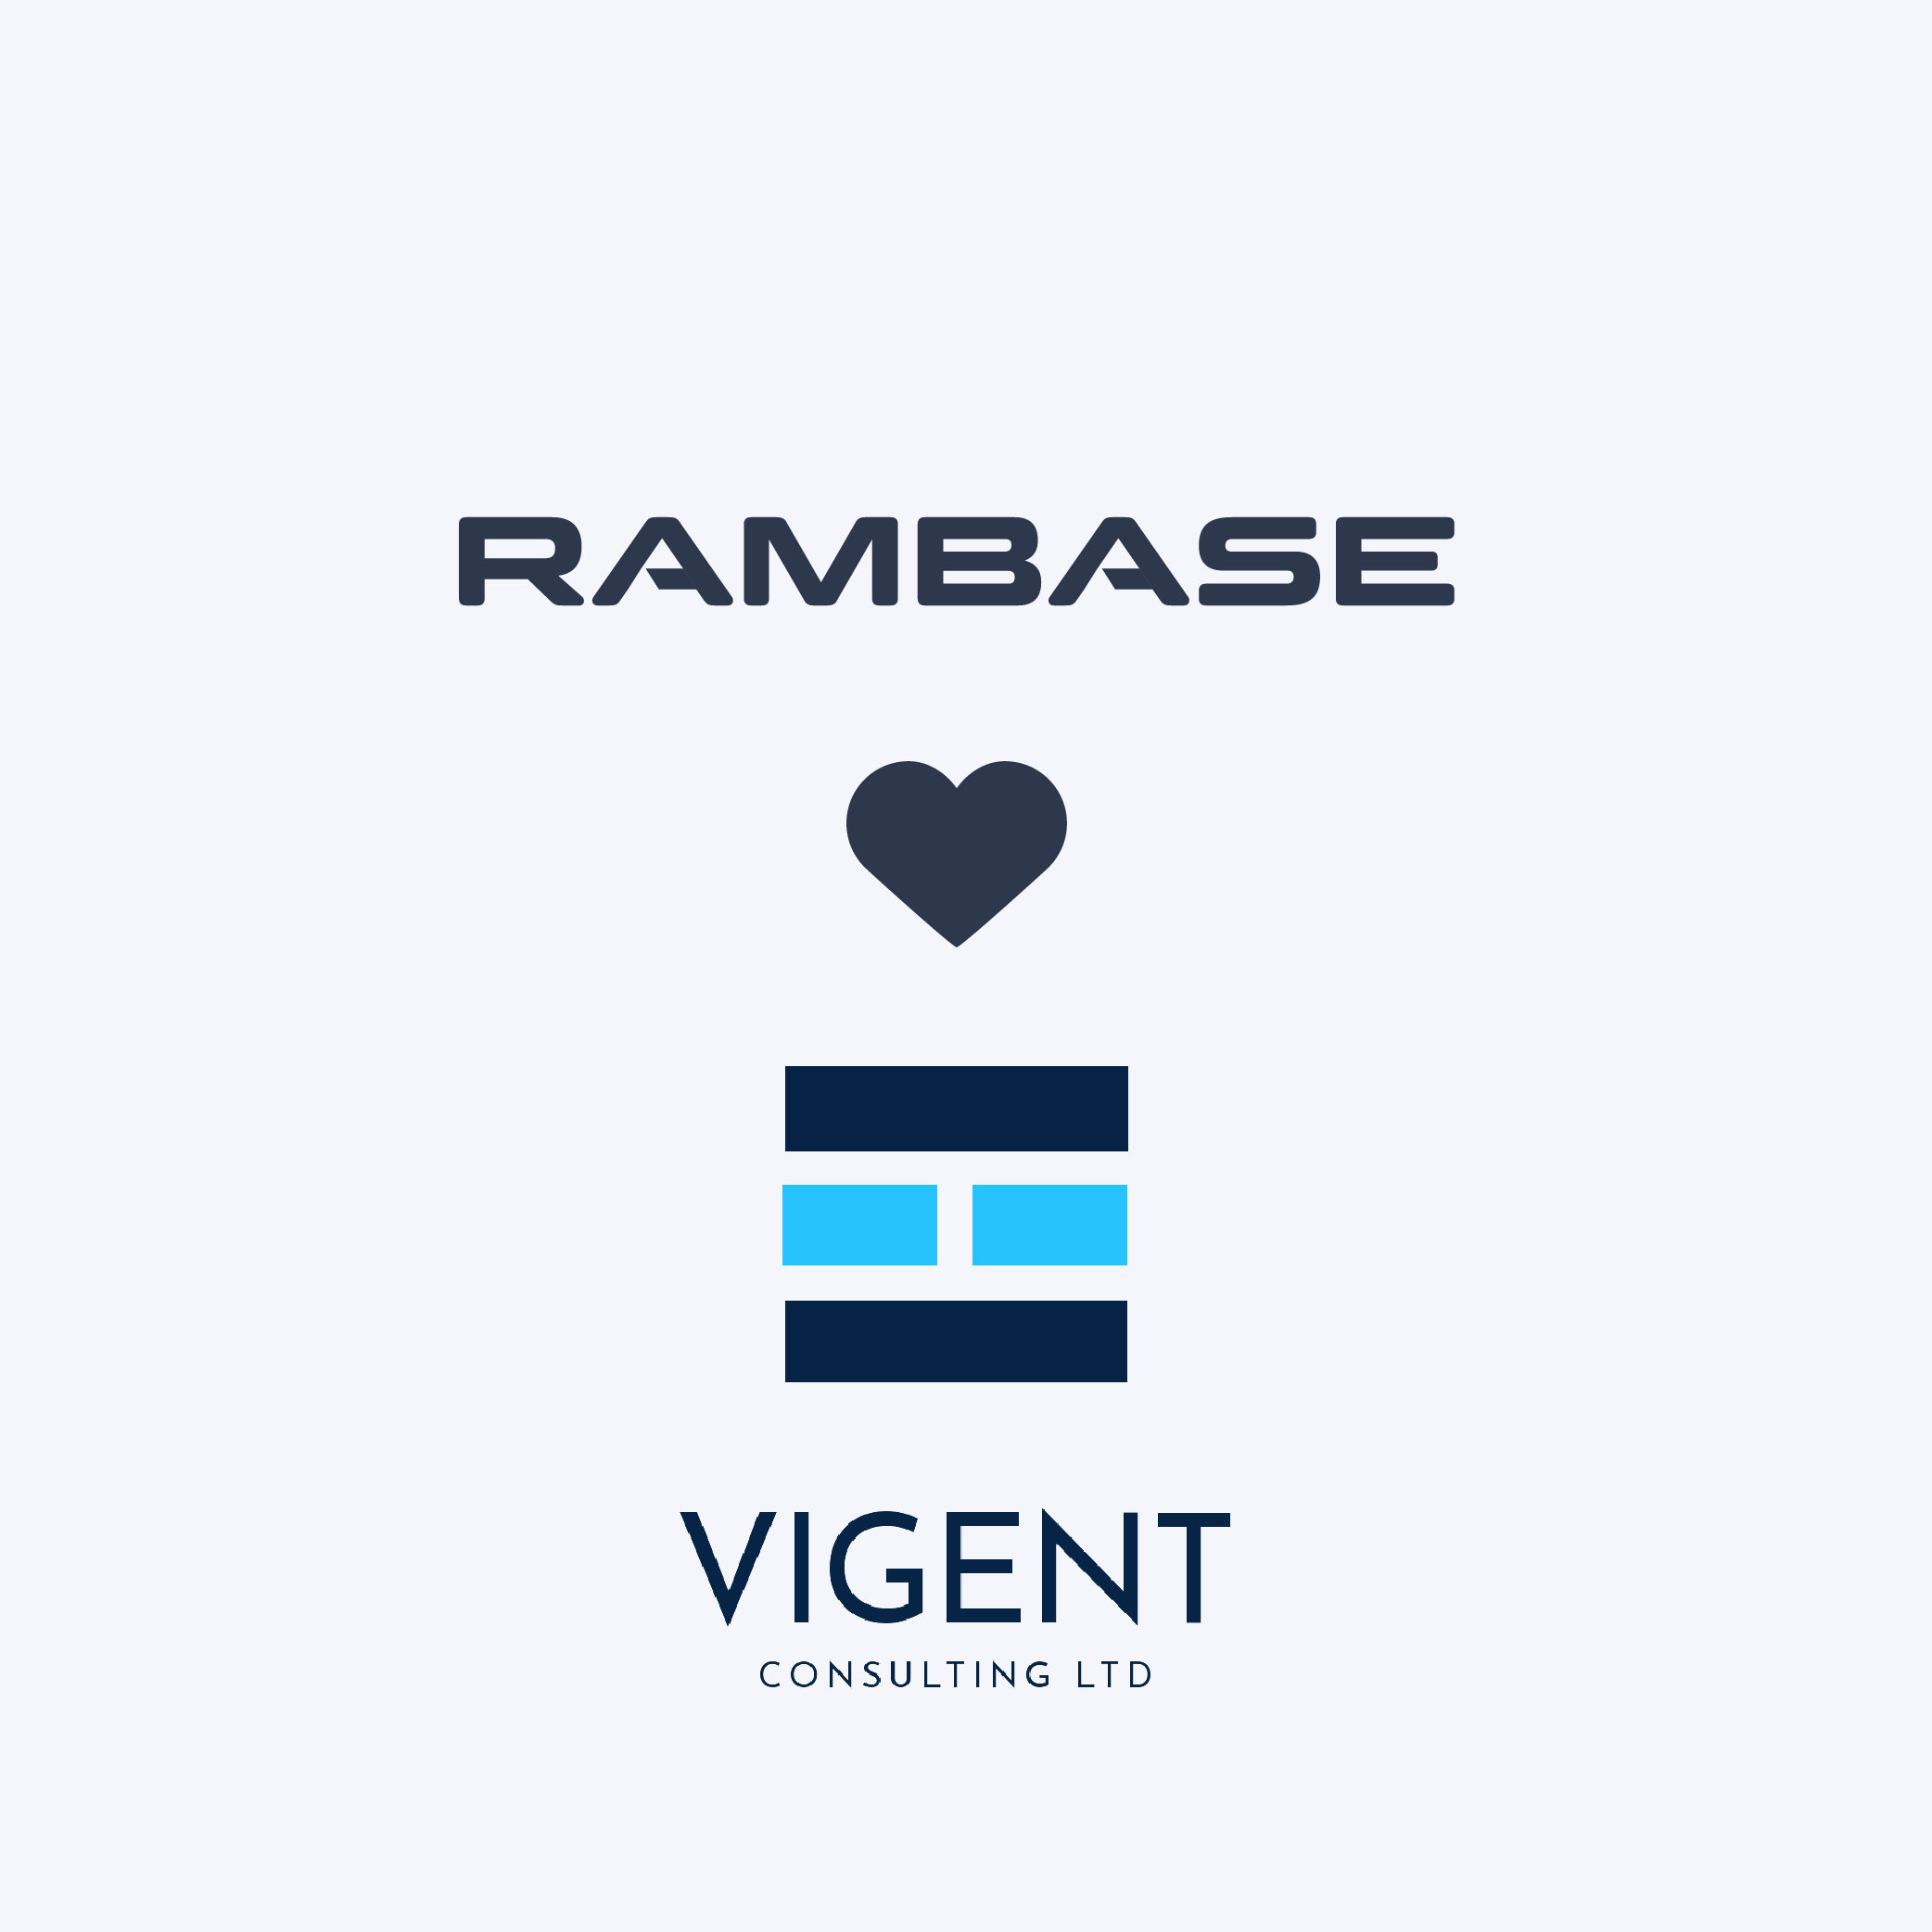 New UK RamBase Partner: Welcome Vigent Consulting Limited!